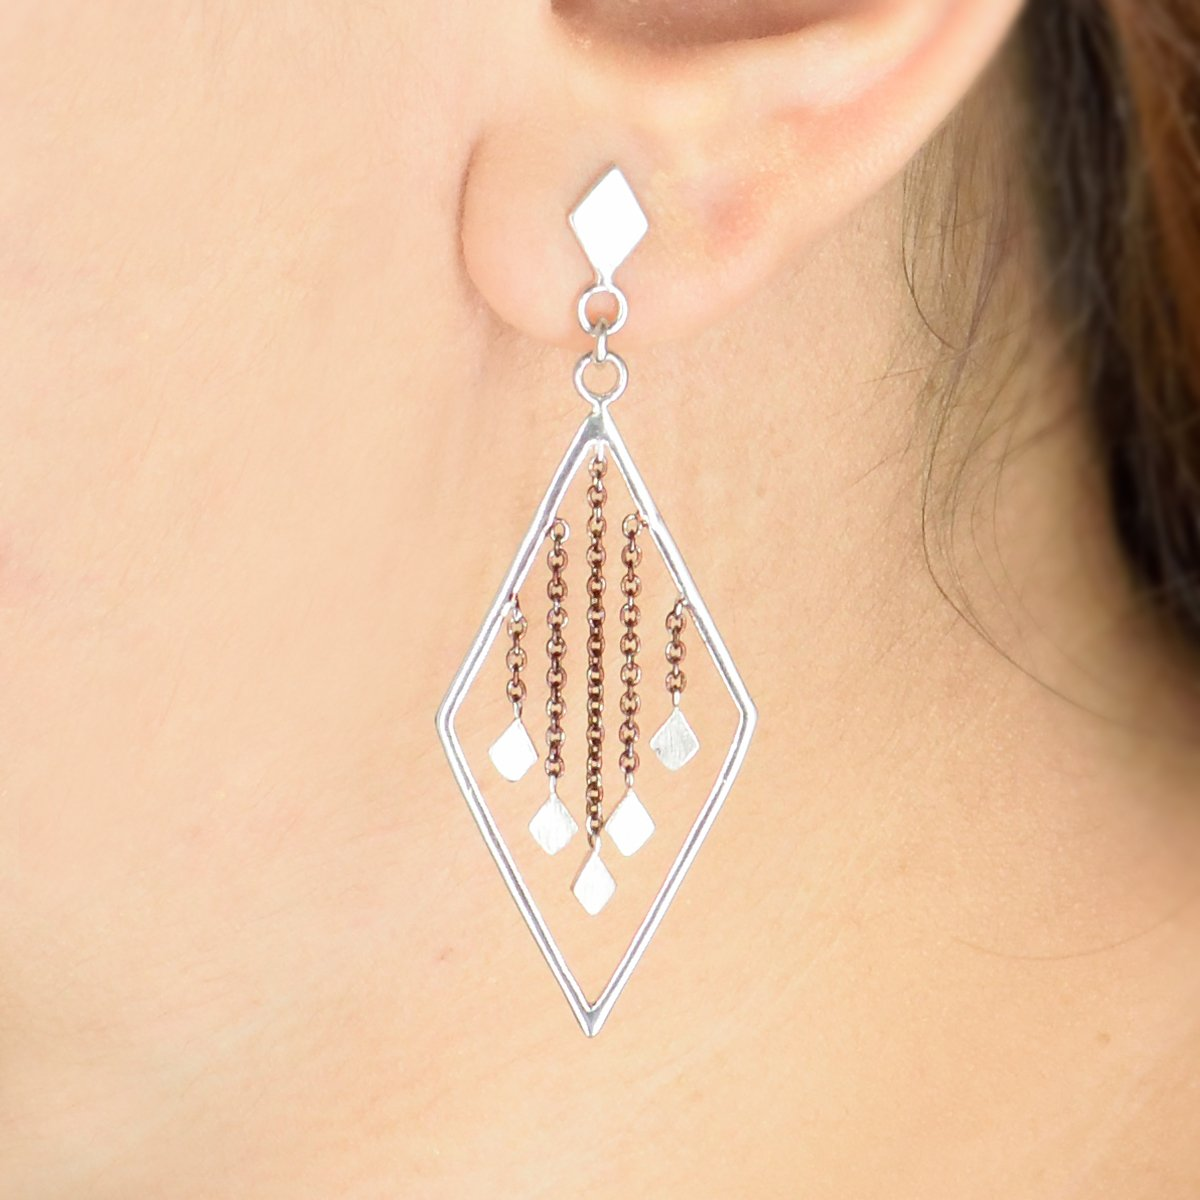 Dainty Diamonds - Long Dangler Drop Earrings - Aliame